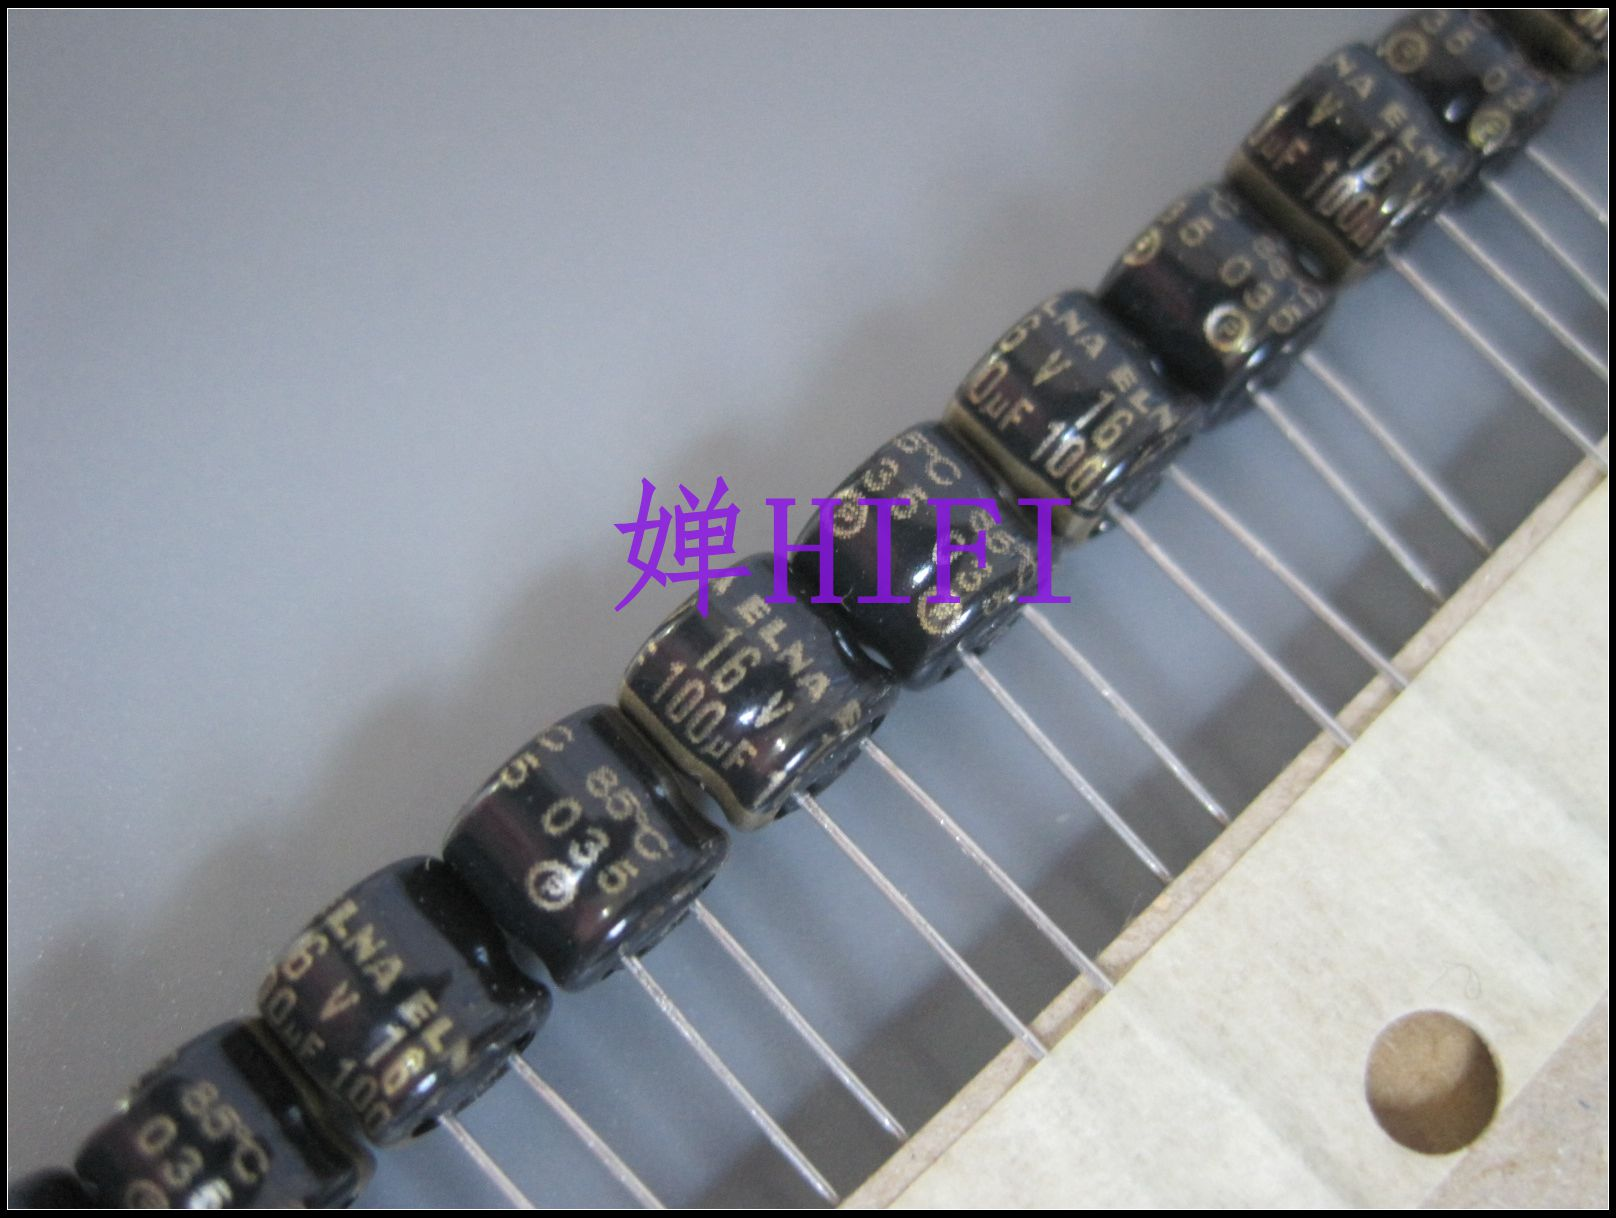 50pcs Elna Original Ra2 Black Gold  Electrolytic Capacitor 16v100uf 6x5 Free Shipping